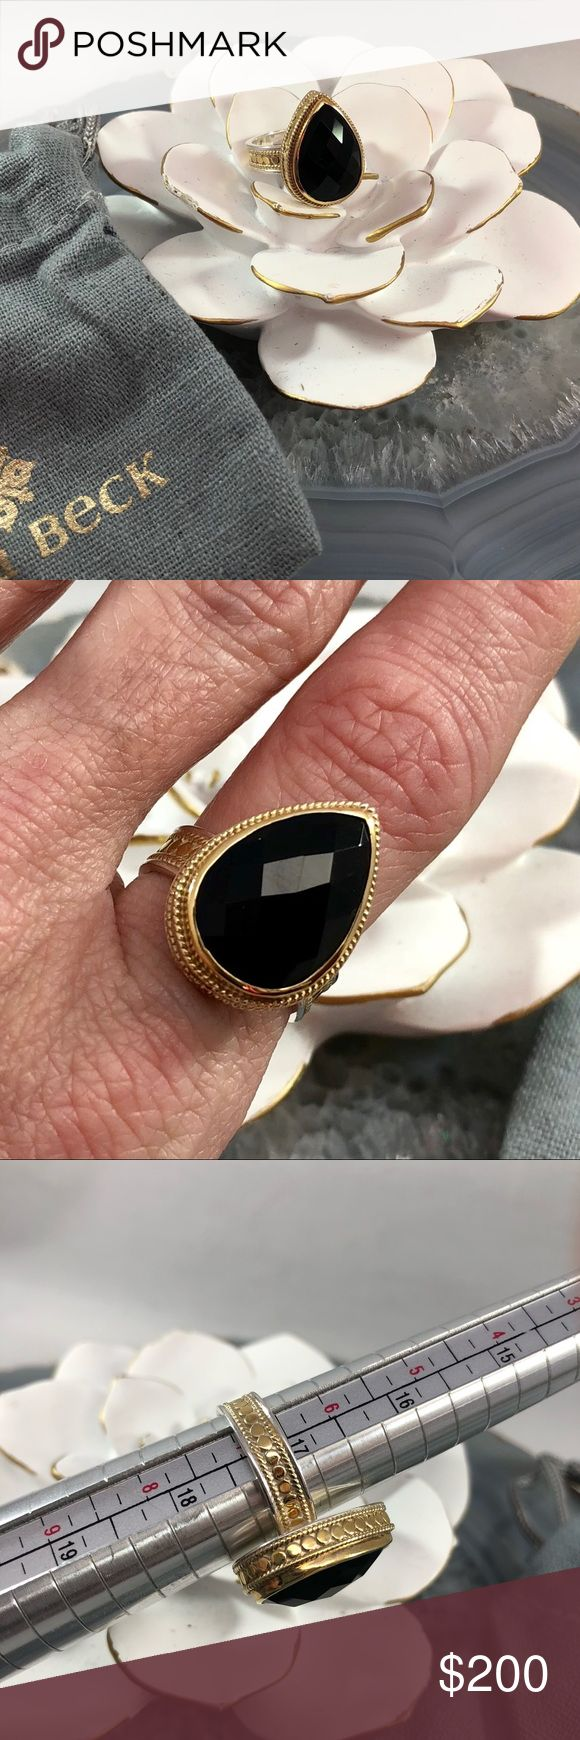 ❤️ Anna Beck black onyx teardrop cocktail ring sz7 Beautiful black Onyx Ring in signature Anna Beck style. All of her pieces are handmade in Bali. 18k gold plated. My favorite designer. Unfortunately my knuckles won't let me wear rings that aren't adjustable so I will have to let go of some cherished pieces. This has only been worn twice and is in perfect condition. Like new! I will be posting a few other pieces from my collection in the next few days if you are a fan of her beautiful…